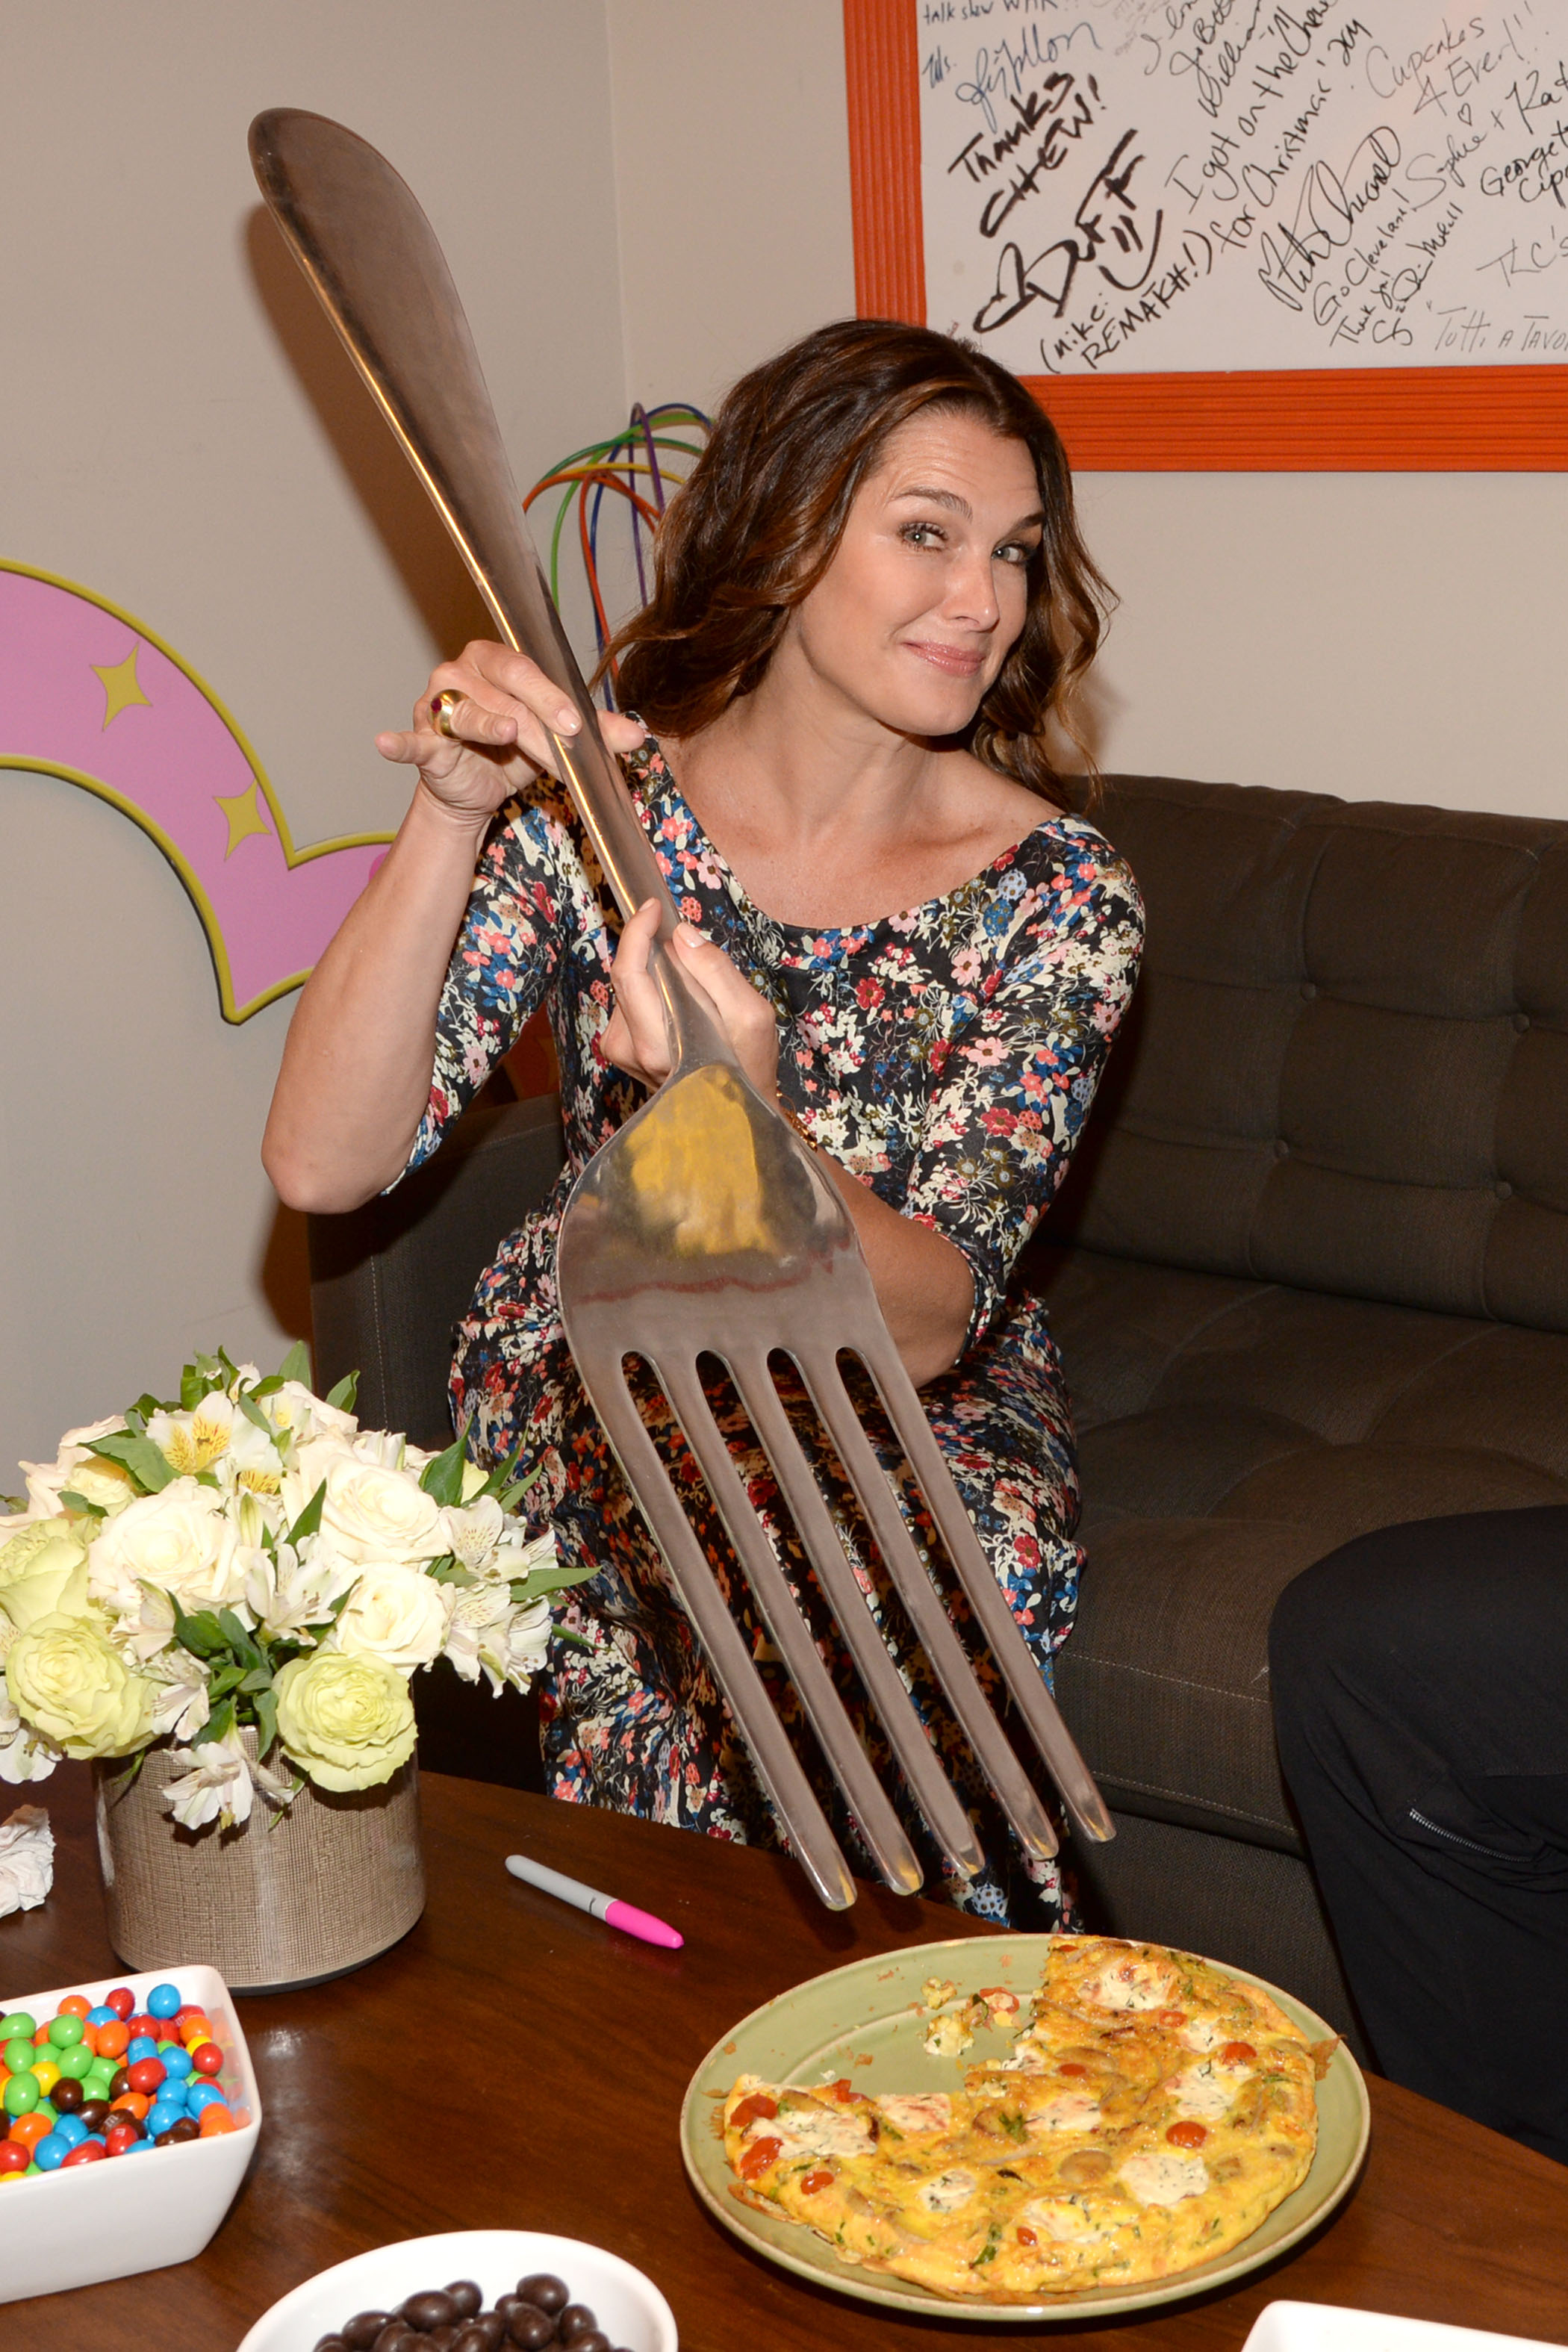 Brooke Shields Backstage at The Chew